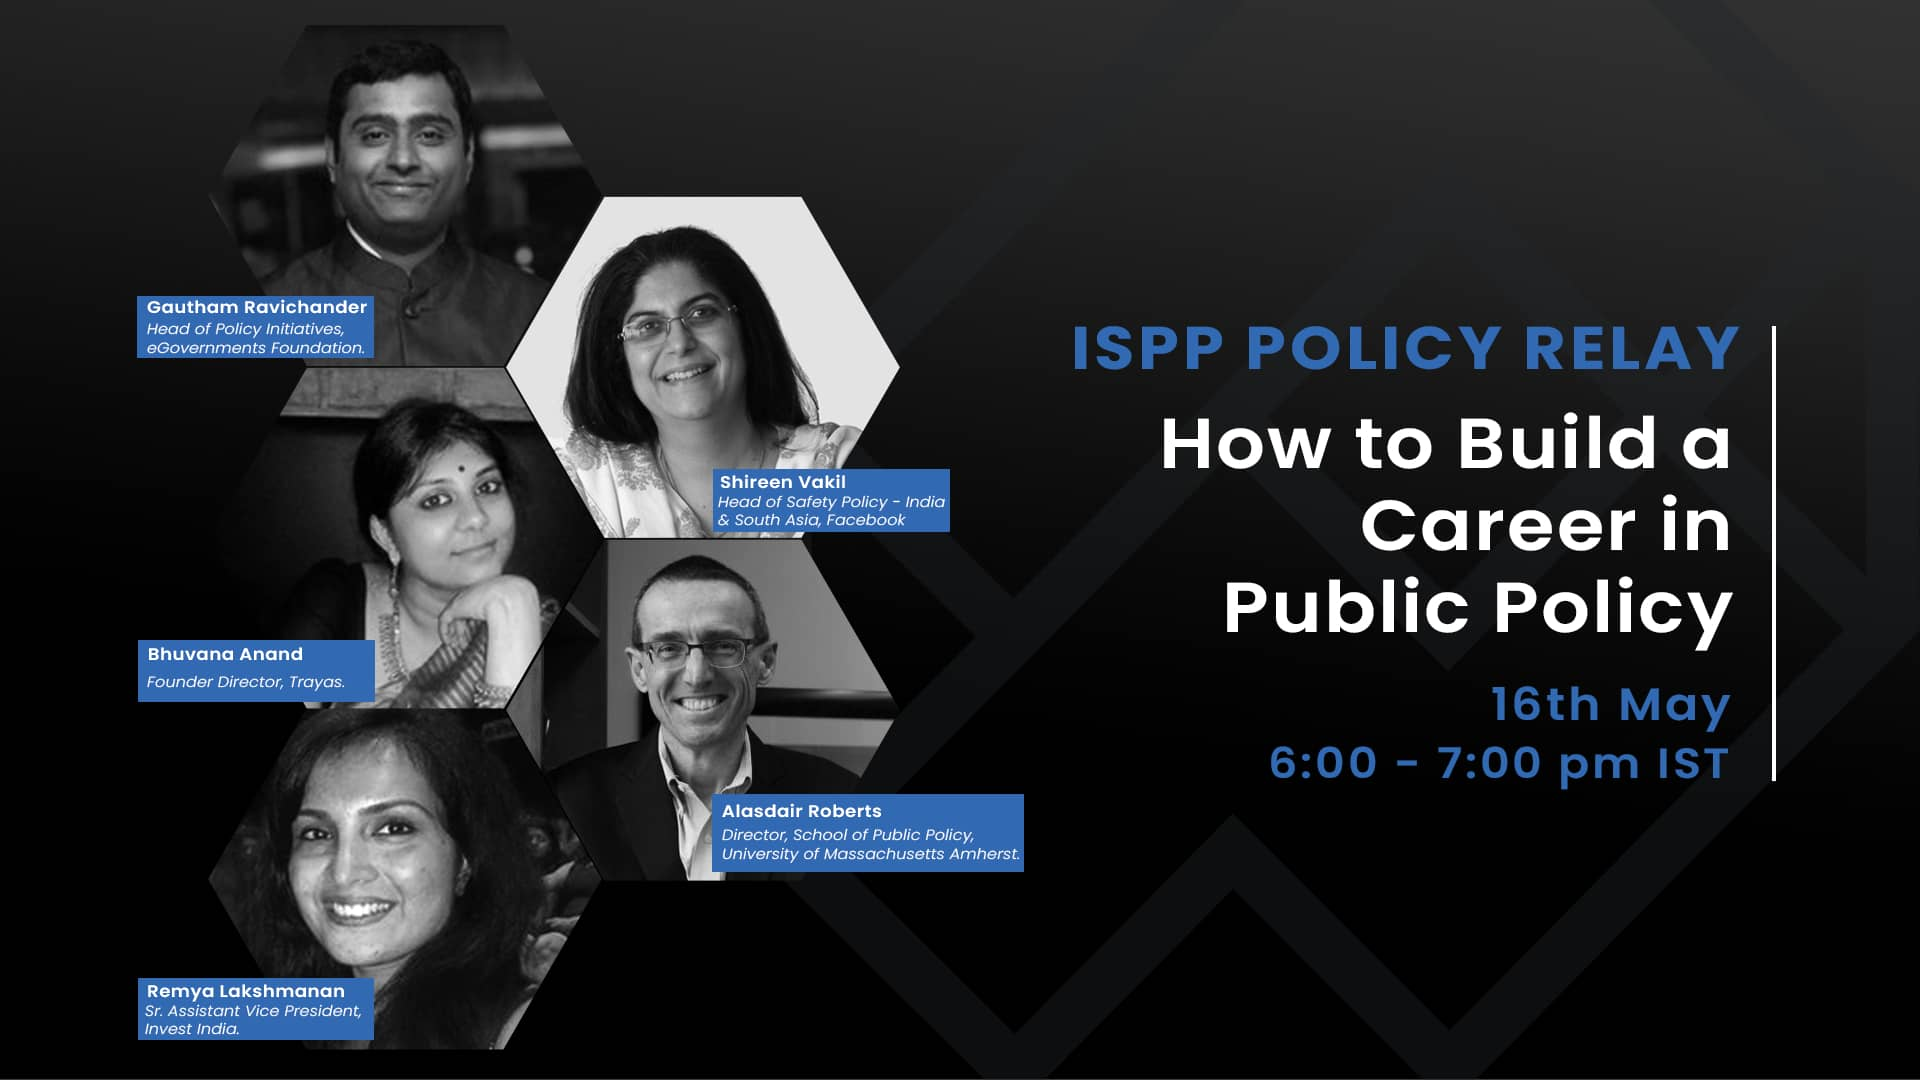 ISPP Policy Relay : How to build a career in Public Policy